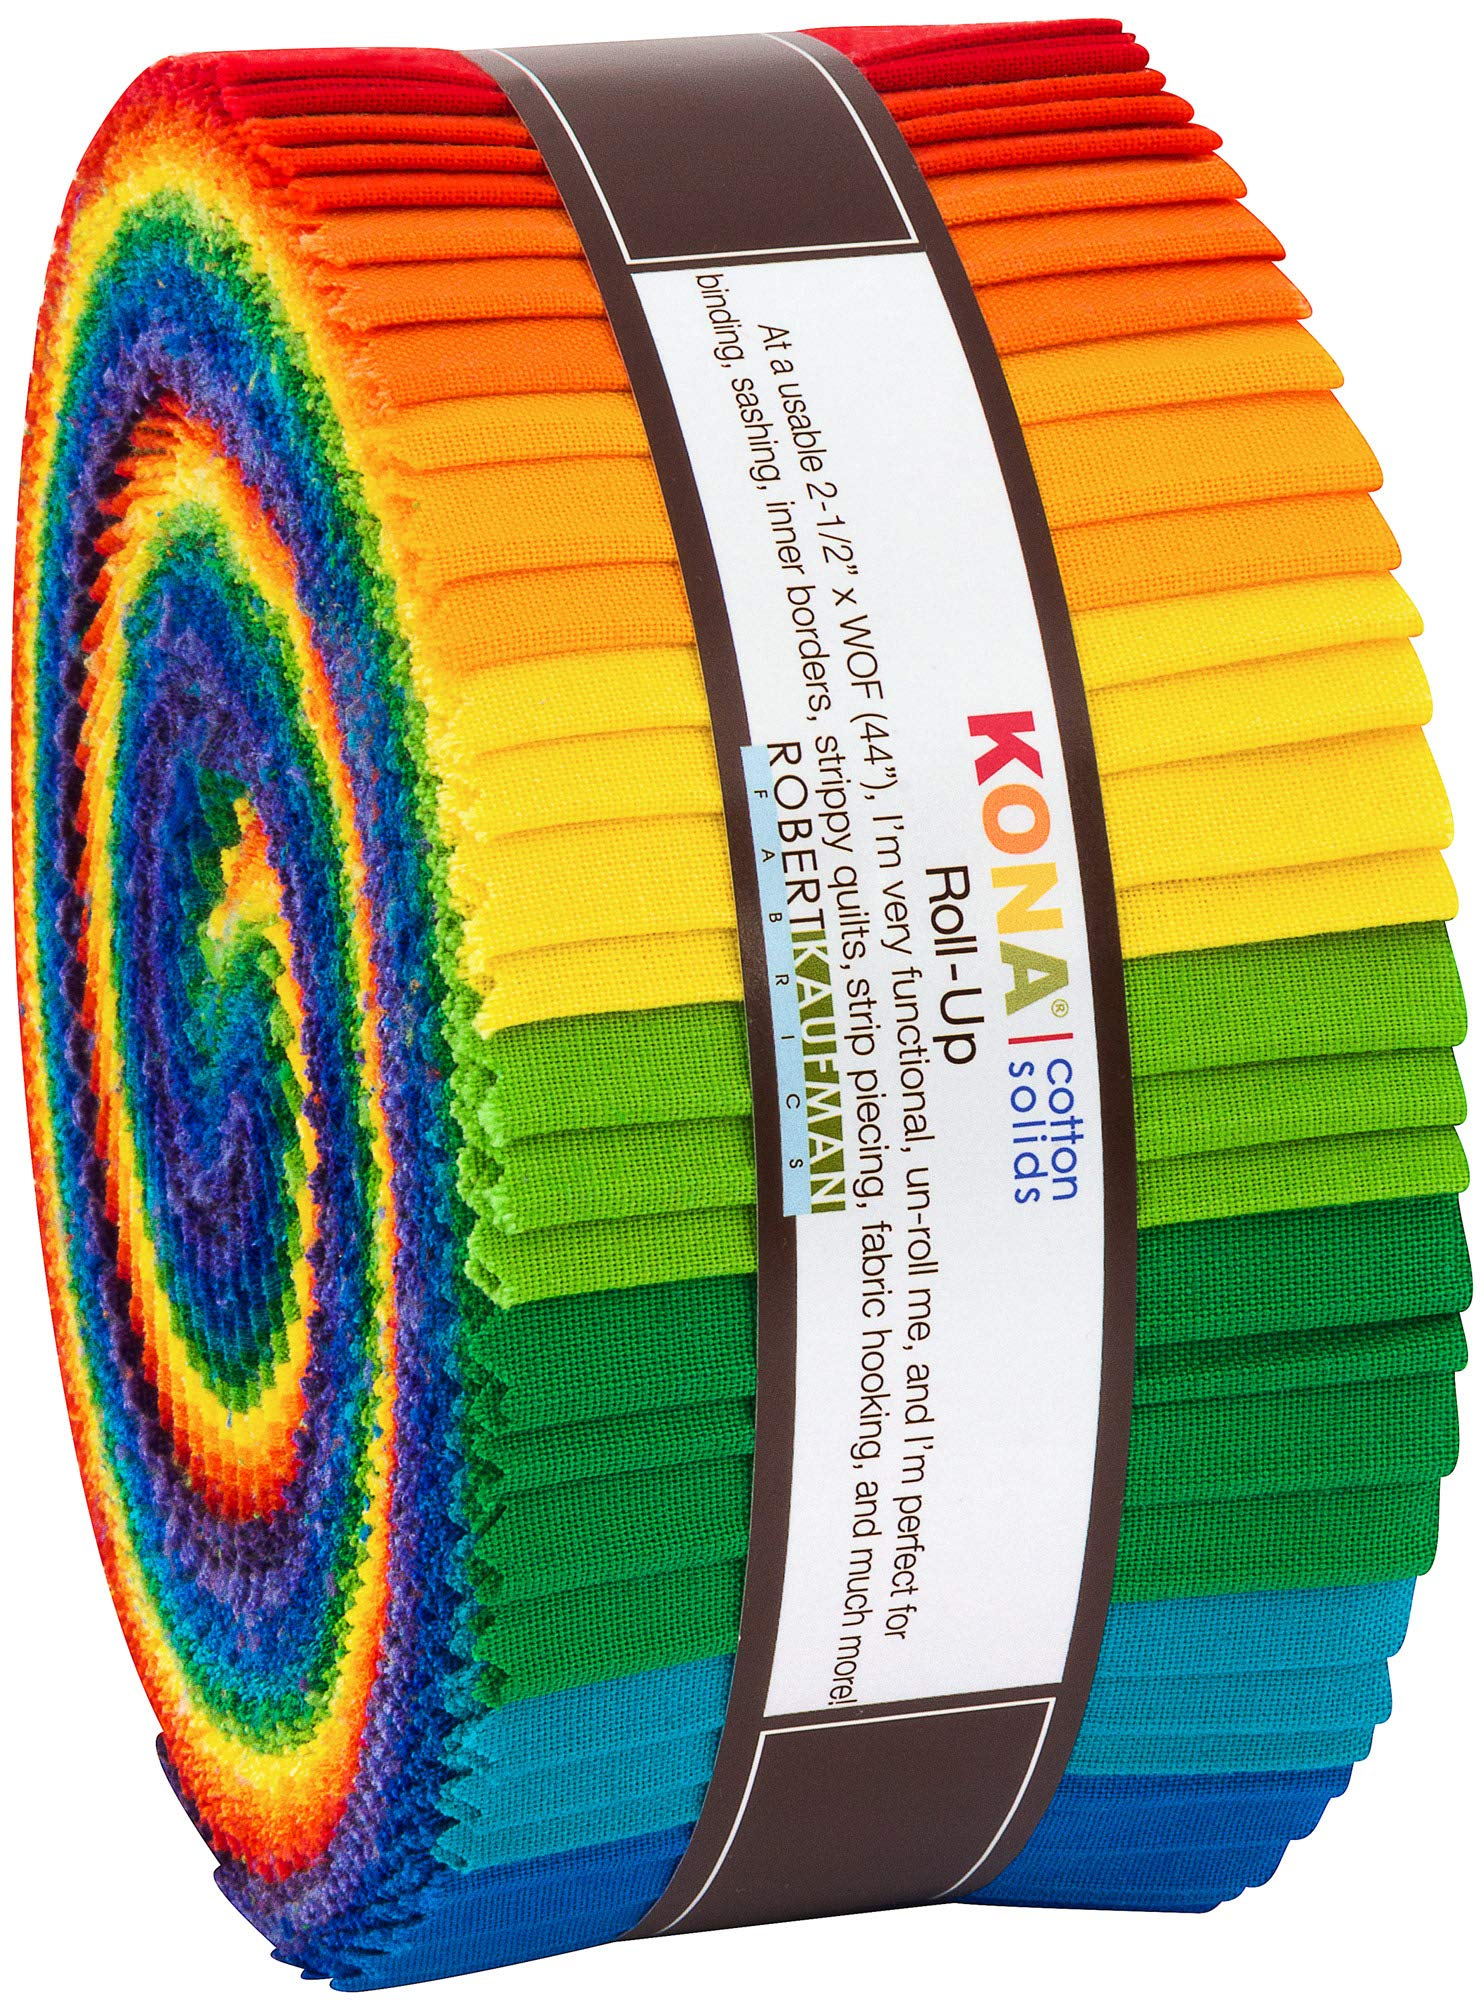 Kona Cotton Bright Rainbow Roll Up 40 2.5-inch Strips Jelly Roll Robert Kaufman